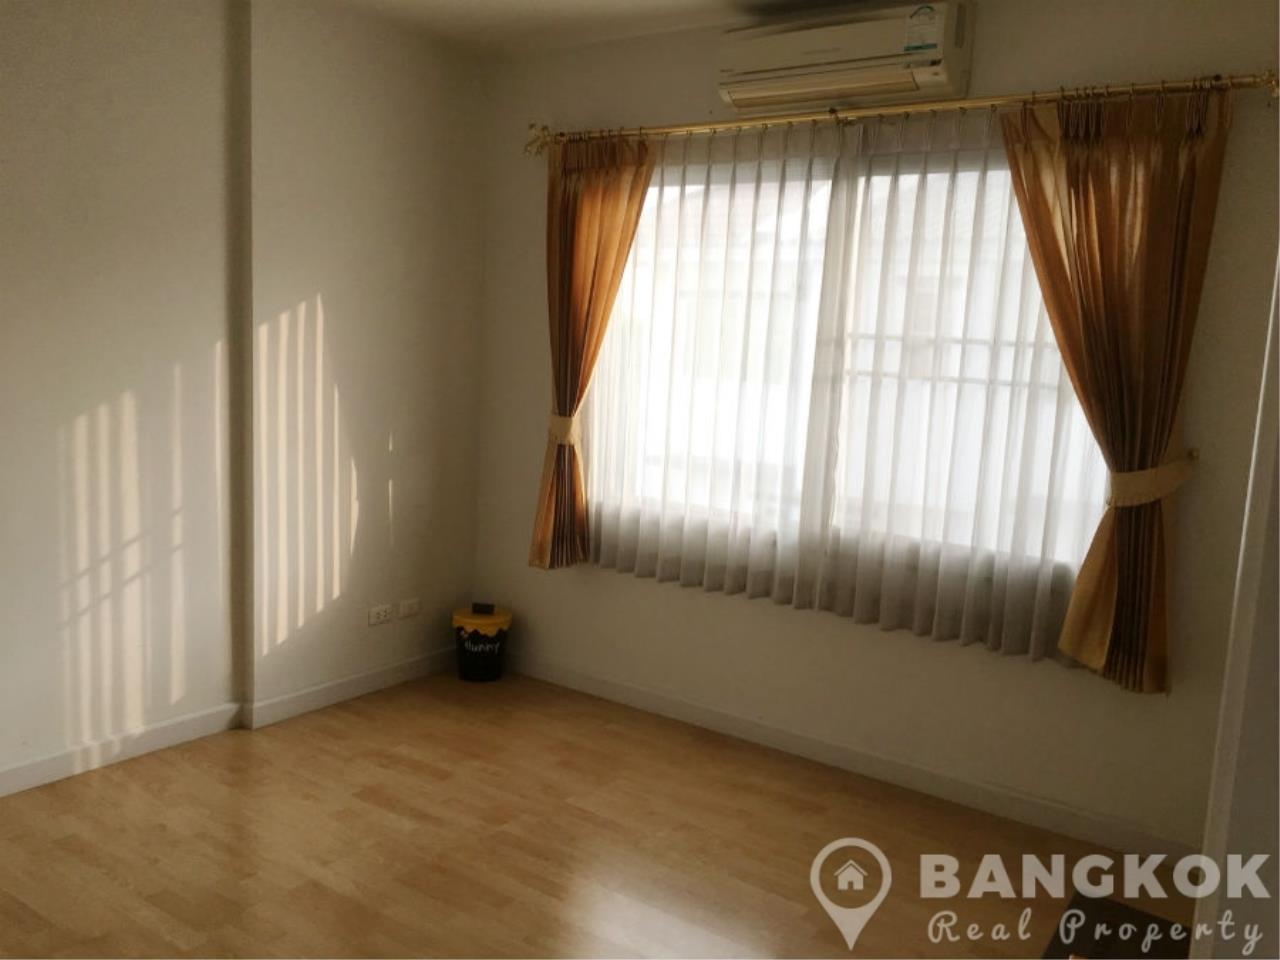 Bangkok Real Property Agency's Modern Udomsuk Townhouse with 3 Bed 3 Bath in Secure Compound 8